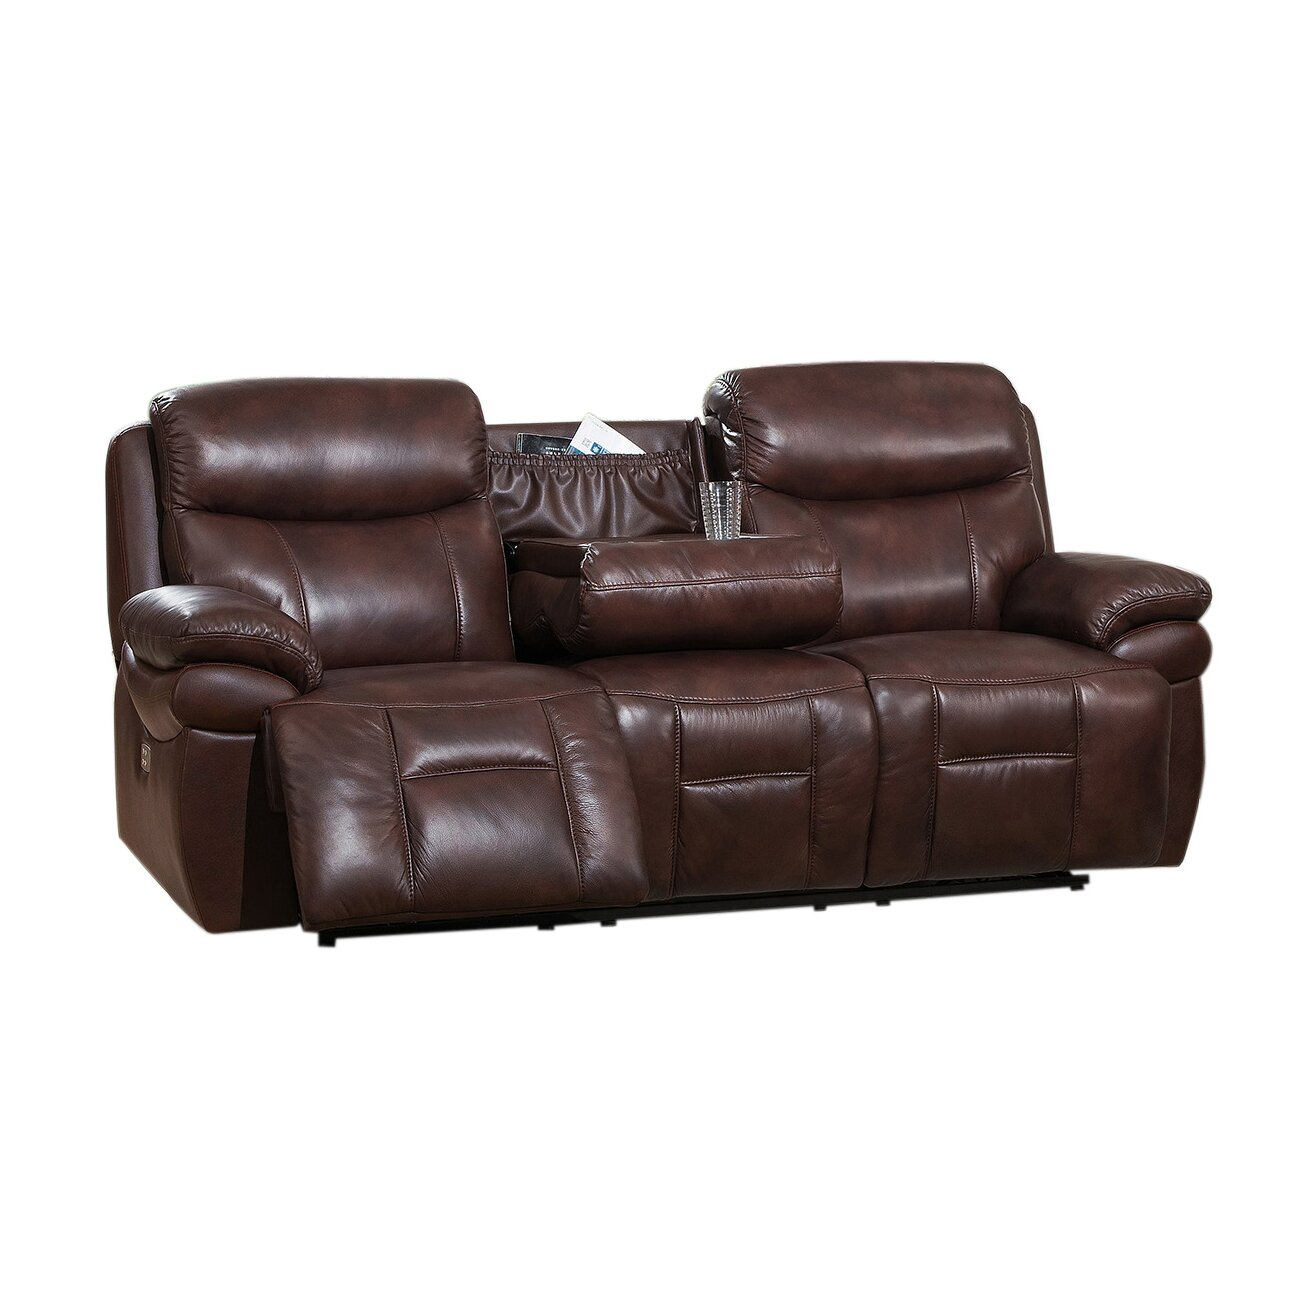 How Much Does Sofa Reupholstery Cost Uk Mjob Blog